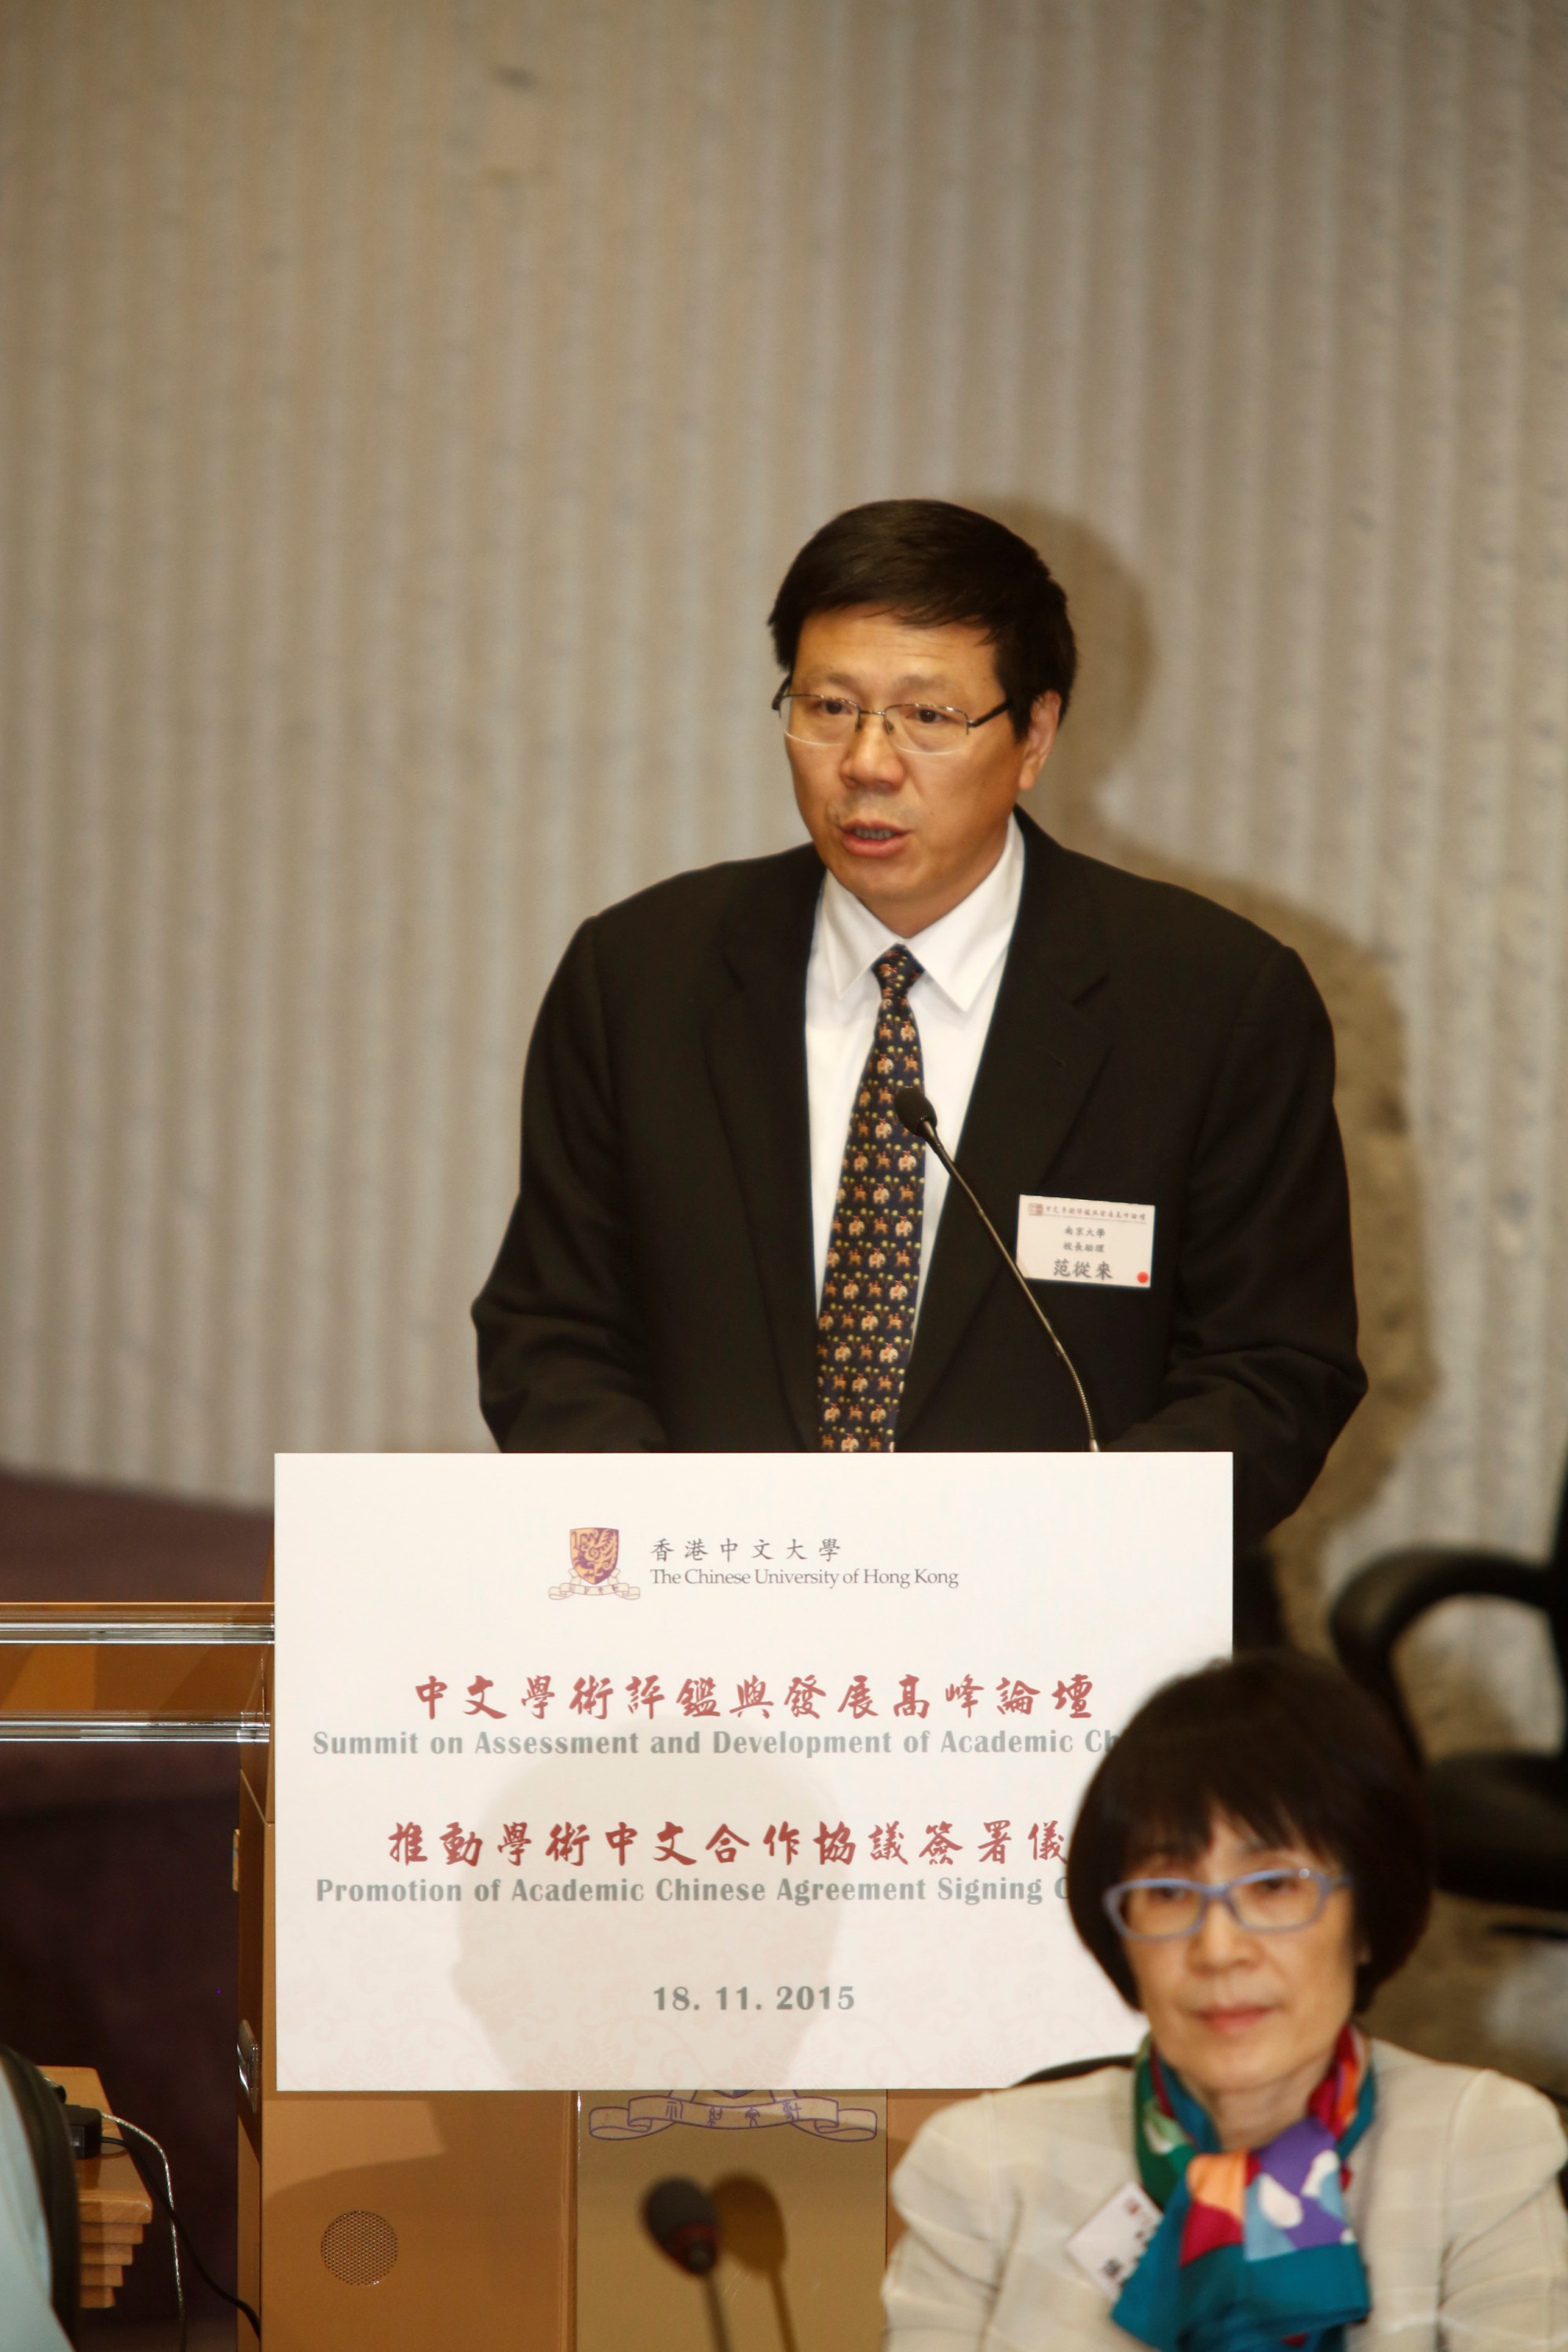 Prof. Fan Cong-Lai, Assistant President of Nanjing University, one of the initiating universities, delivers a speech.